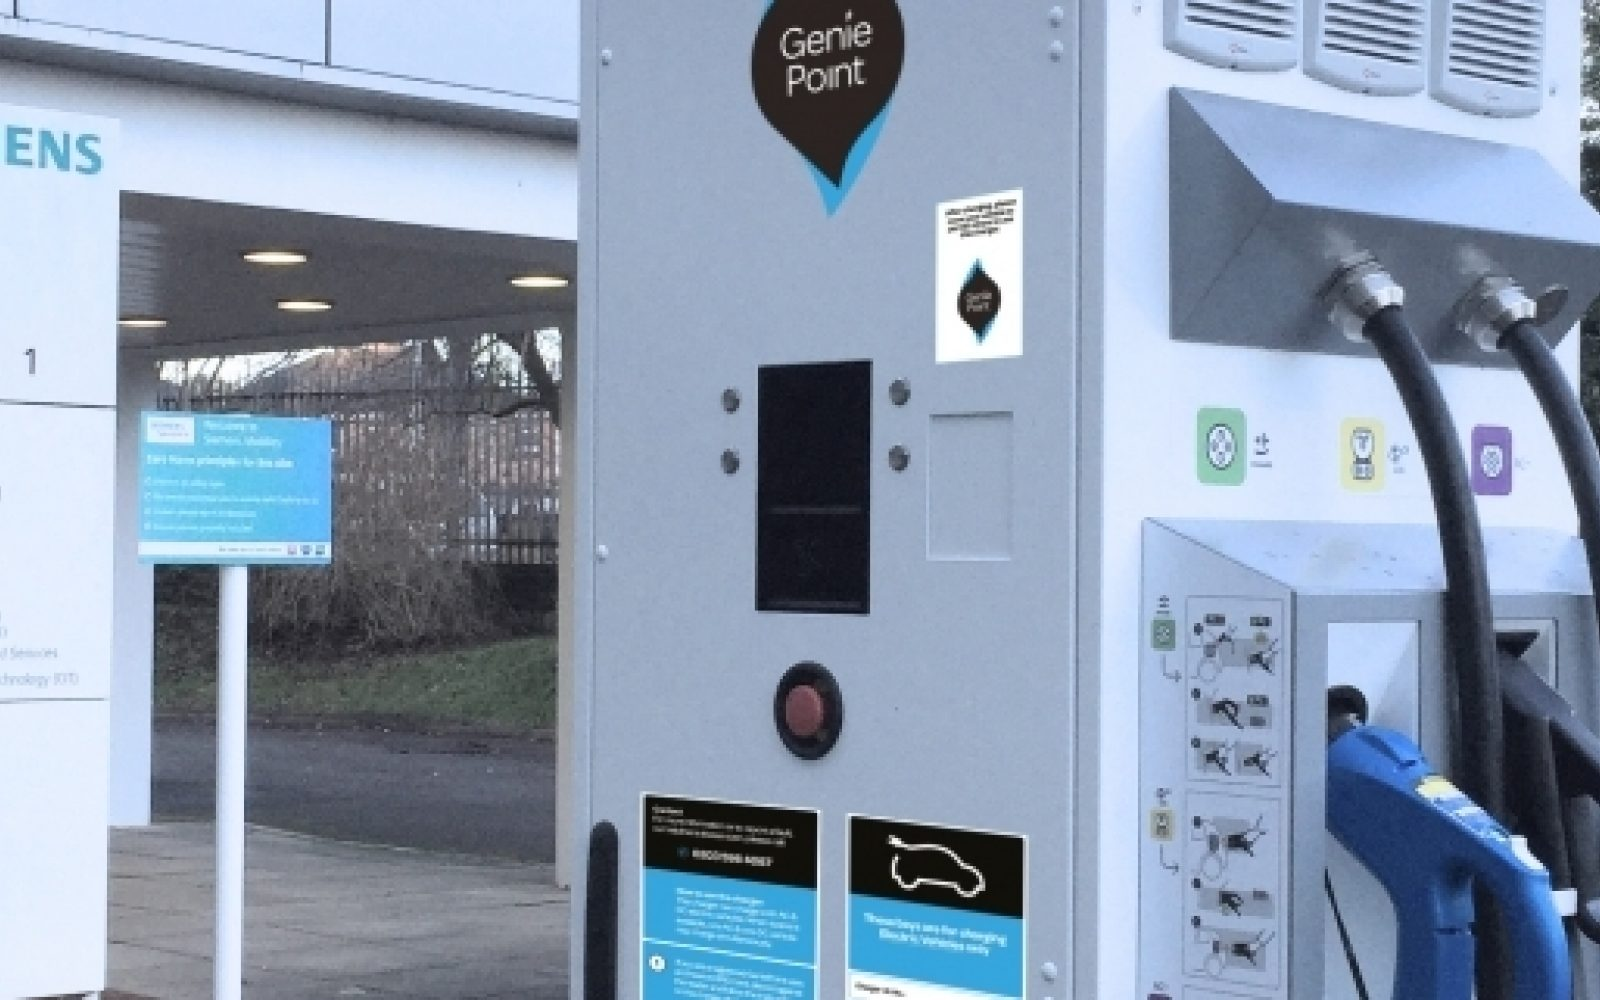 Image: ChargePoint Services/Genie Point.